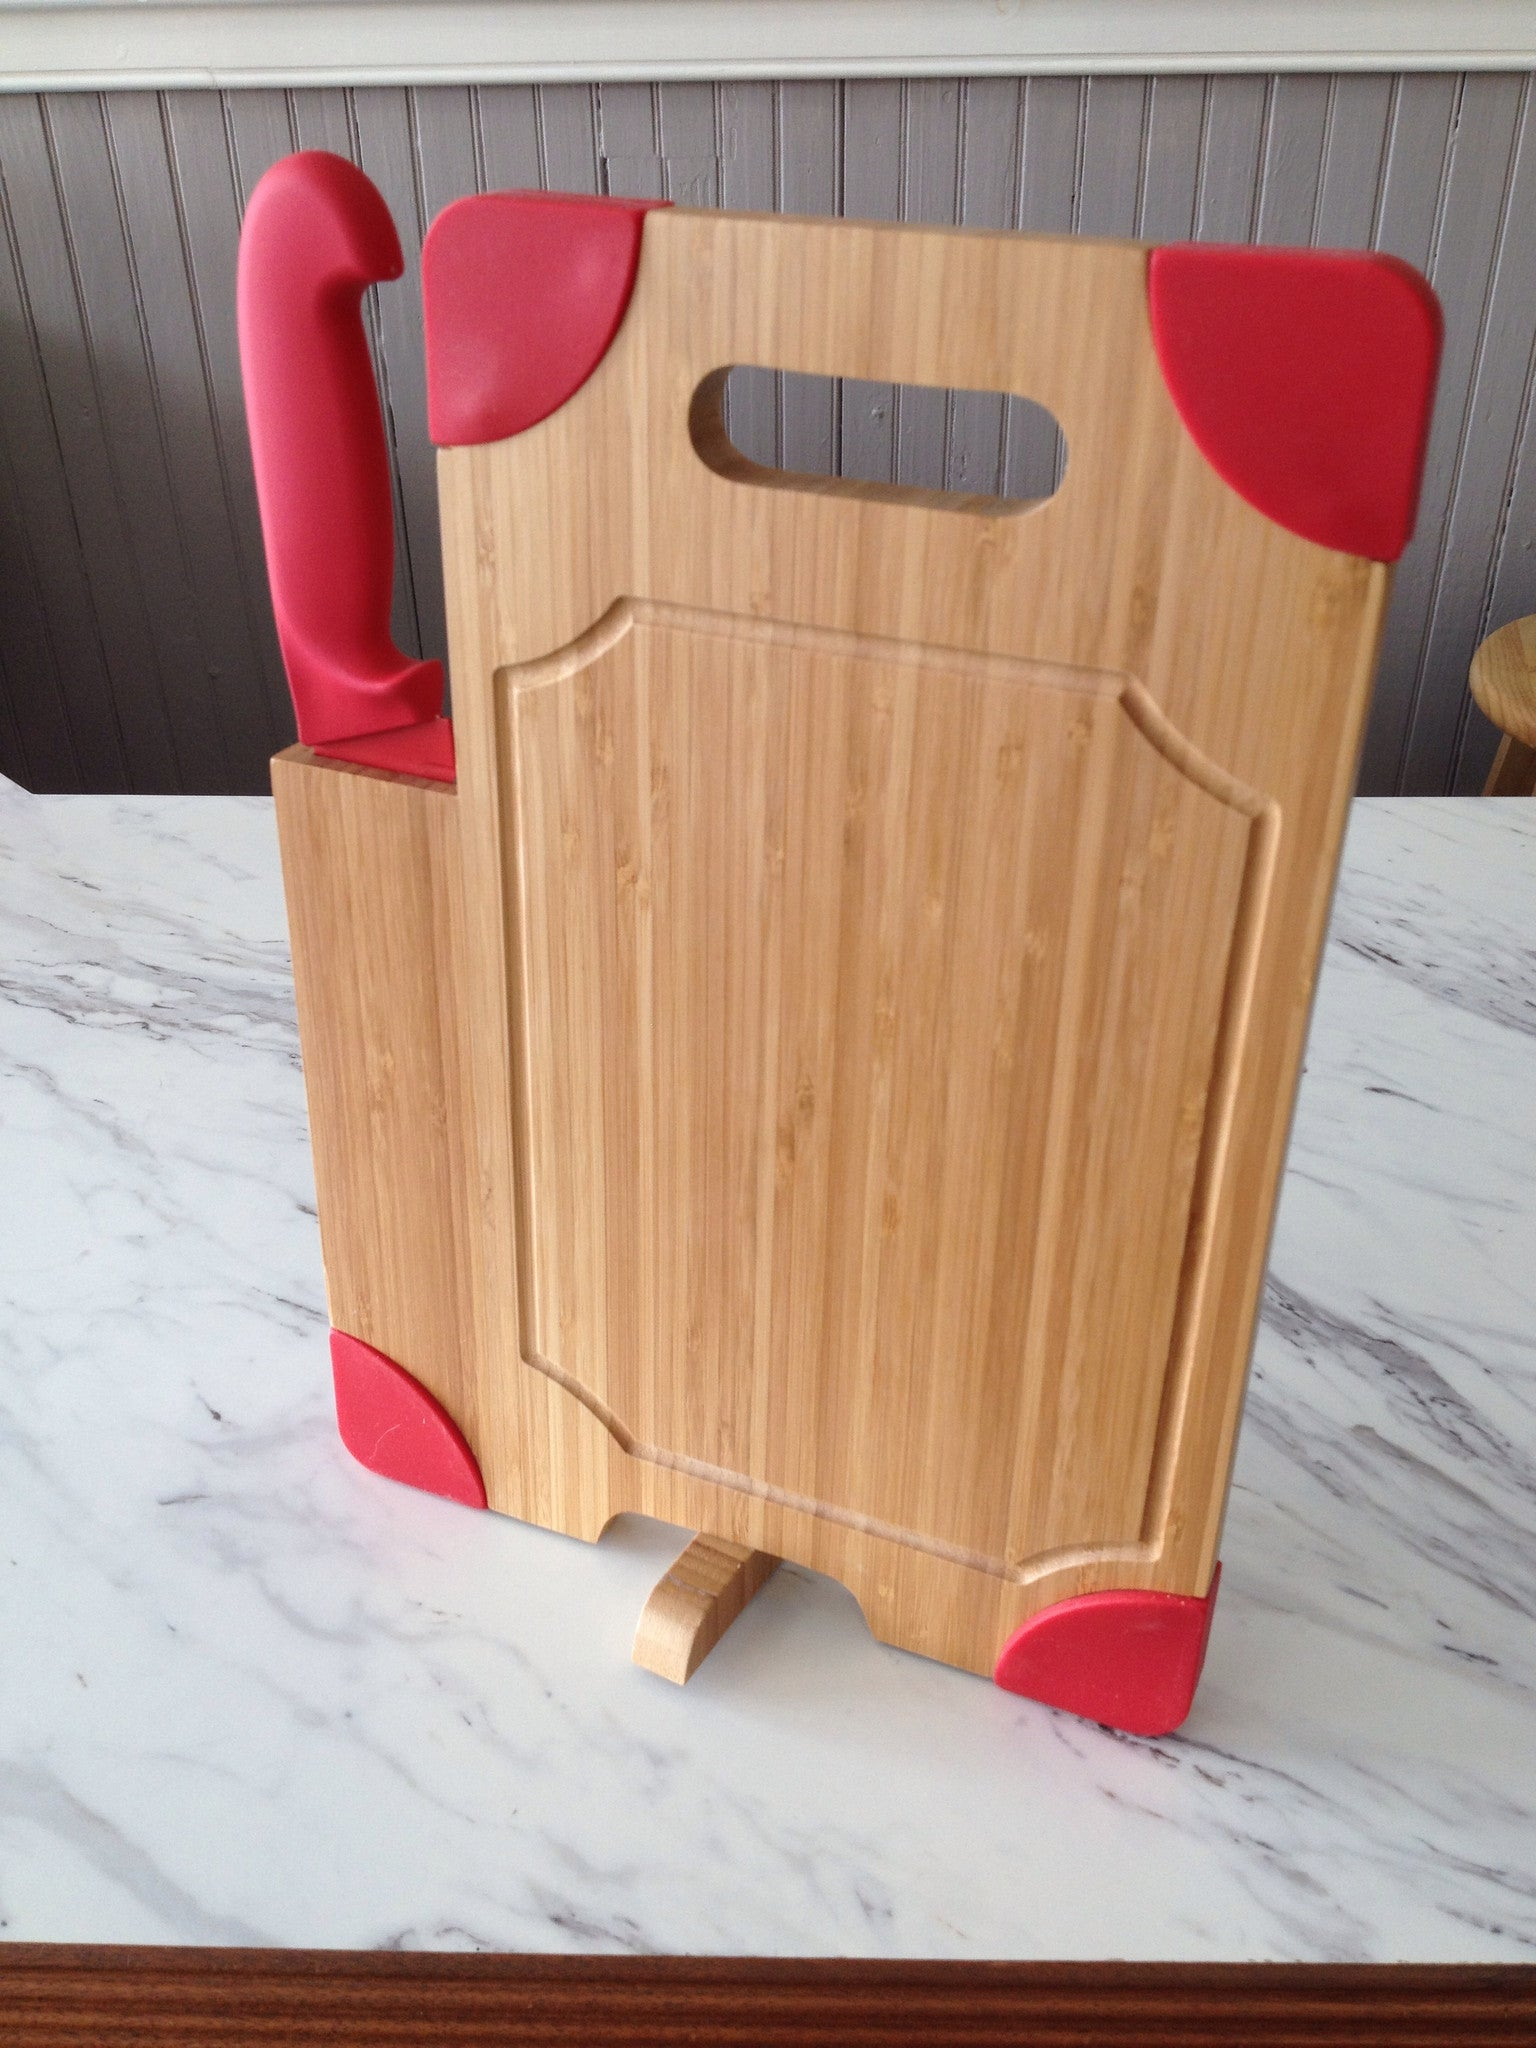 Culina Cutting Board with Knife Set